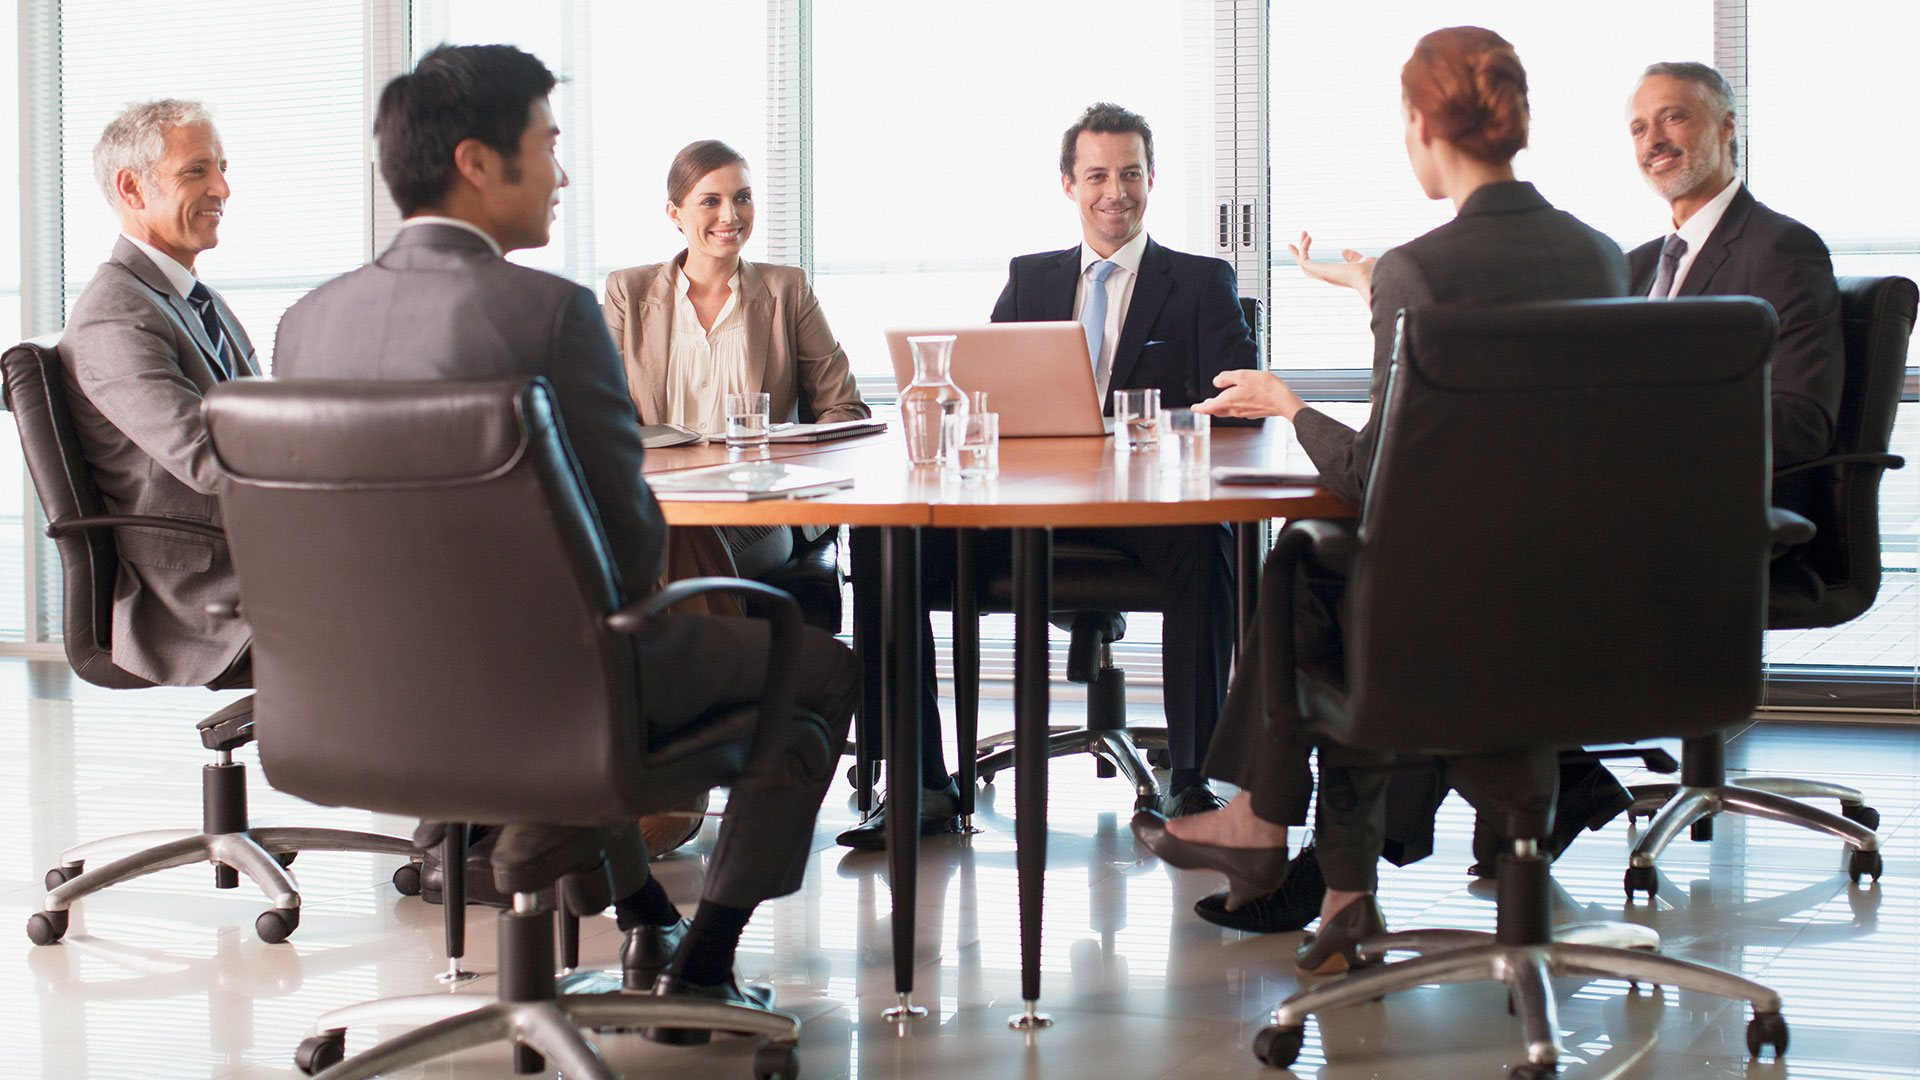 A company meeting at a board table